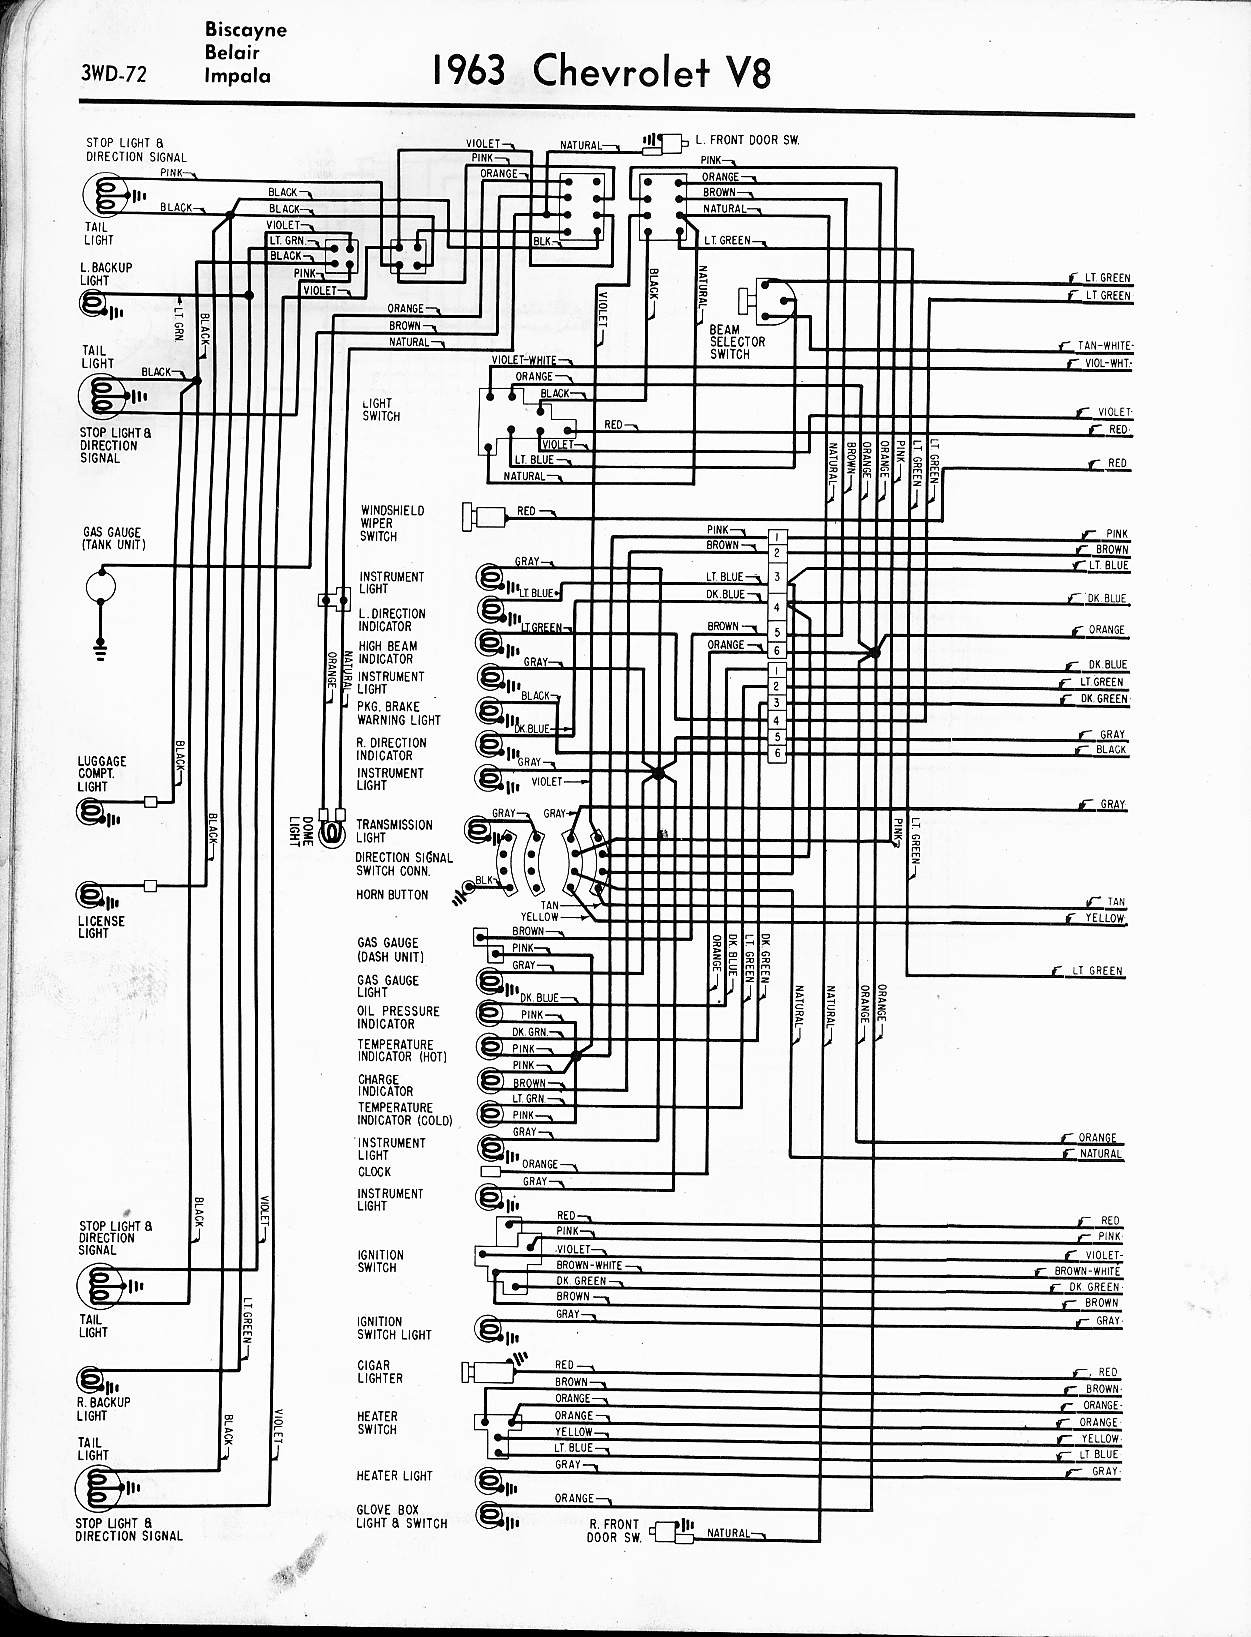 1966 chevy impala wiring diagram wire center u2022 rh 207 246 123 107